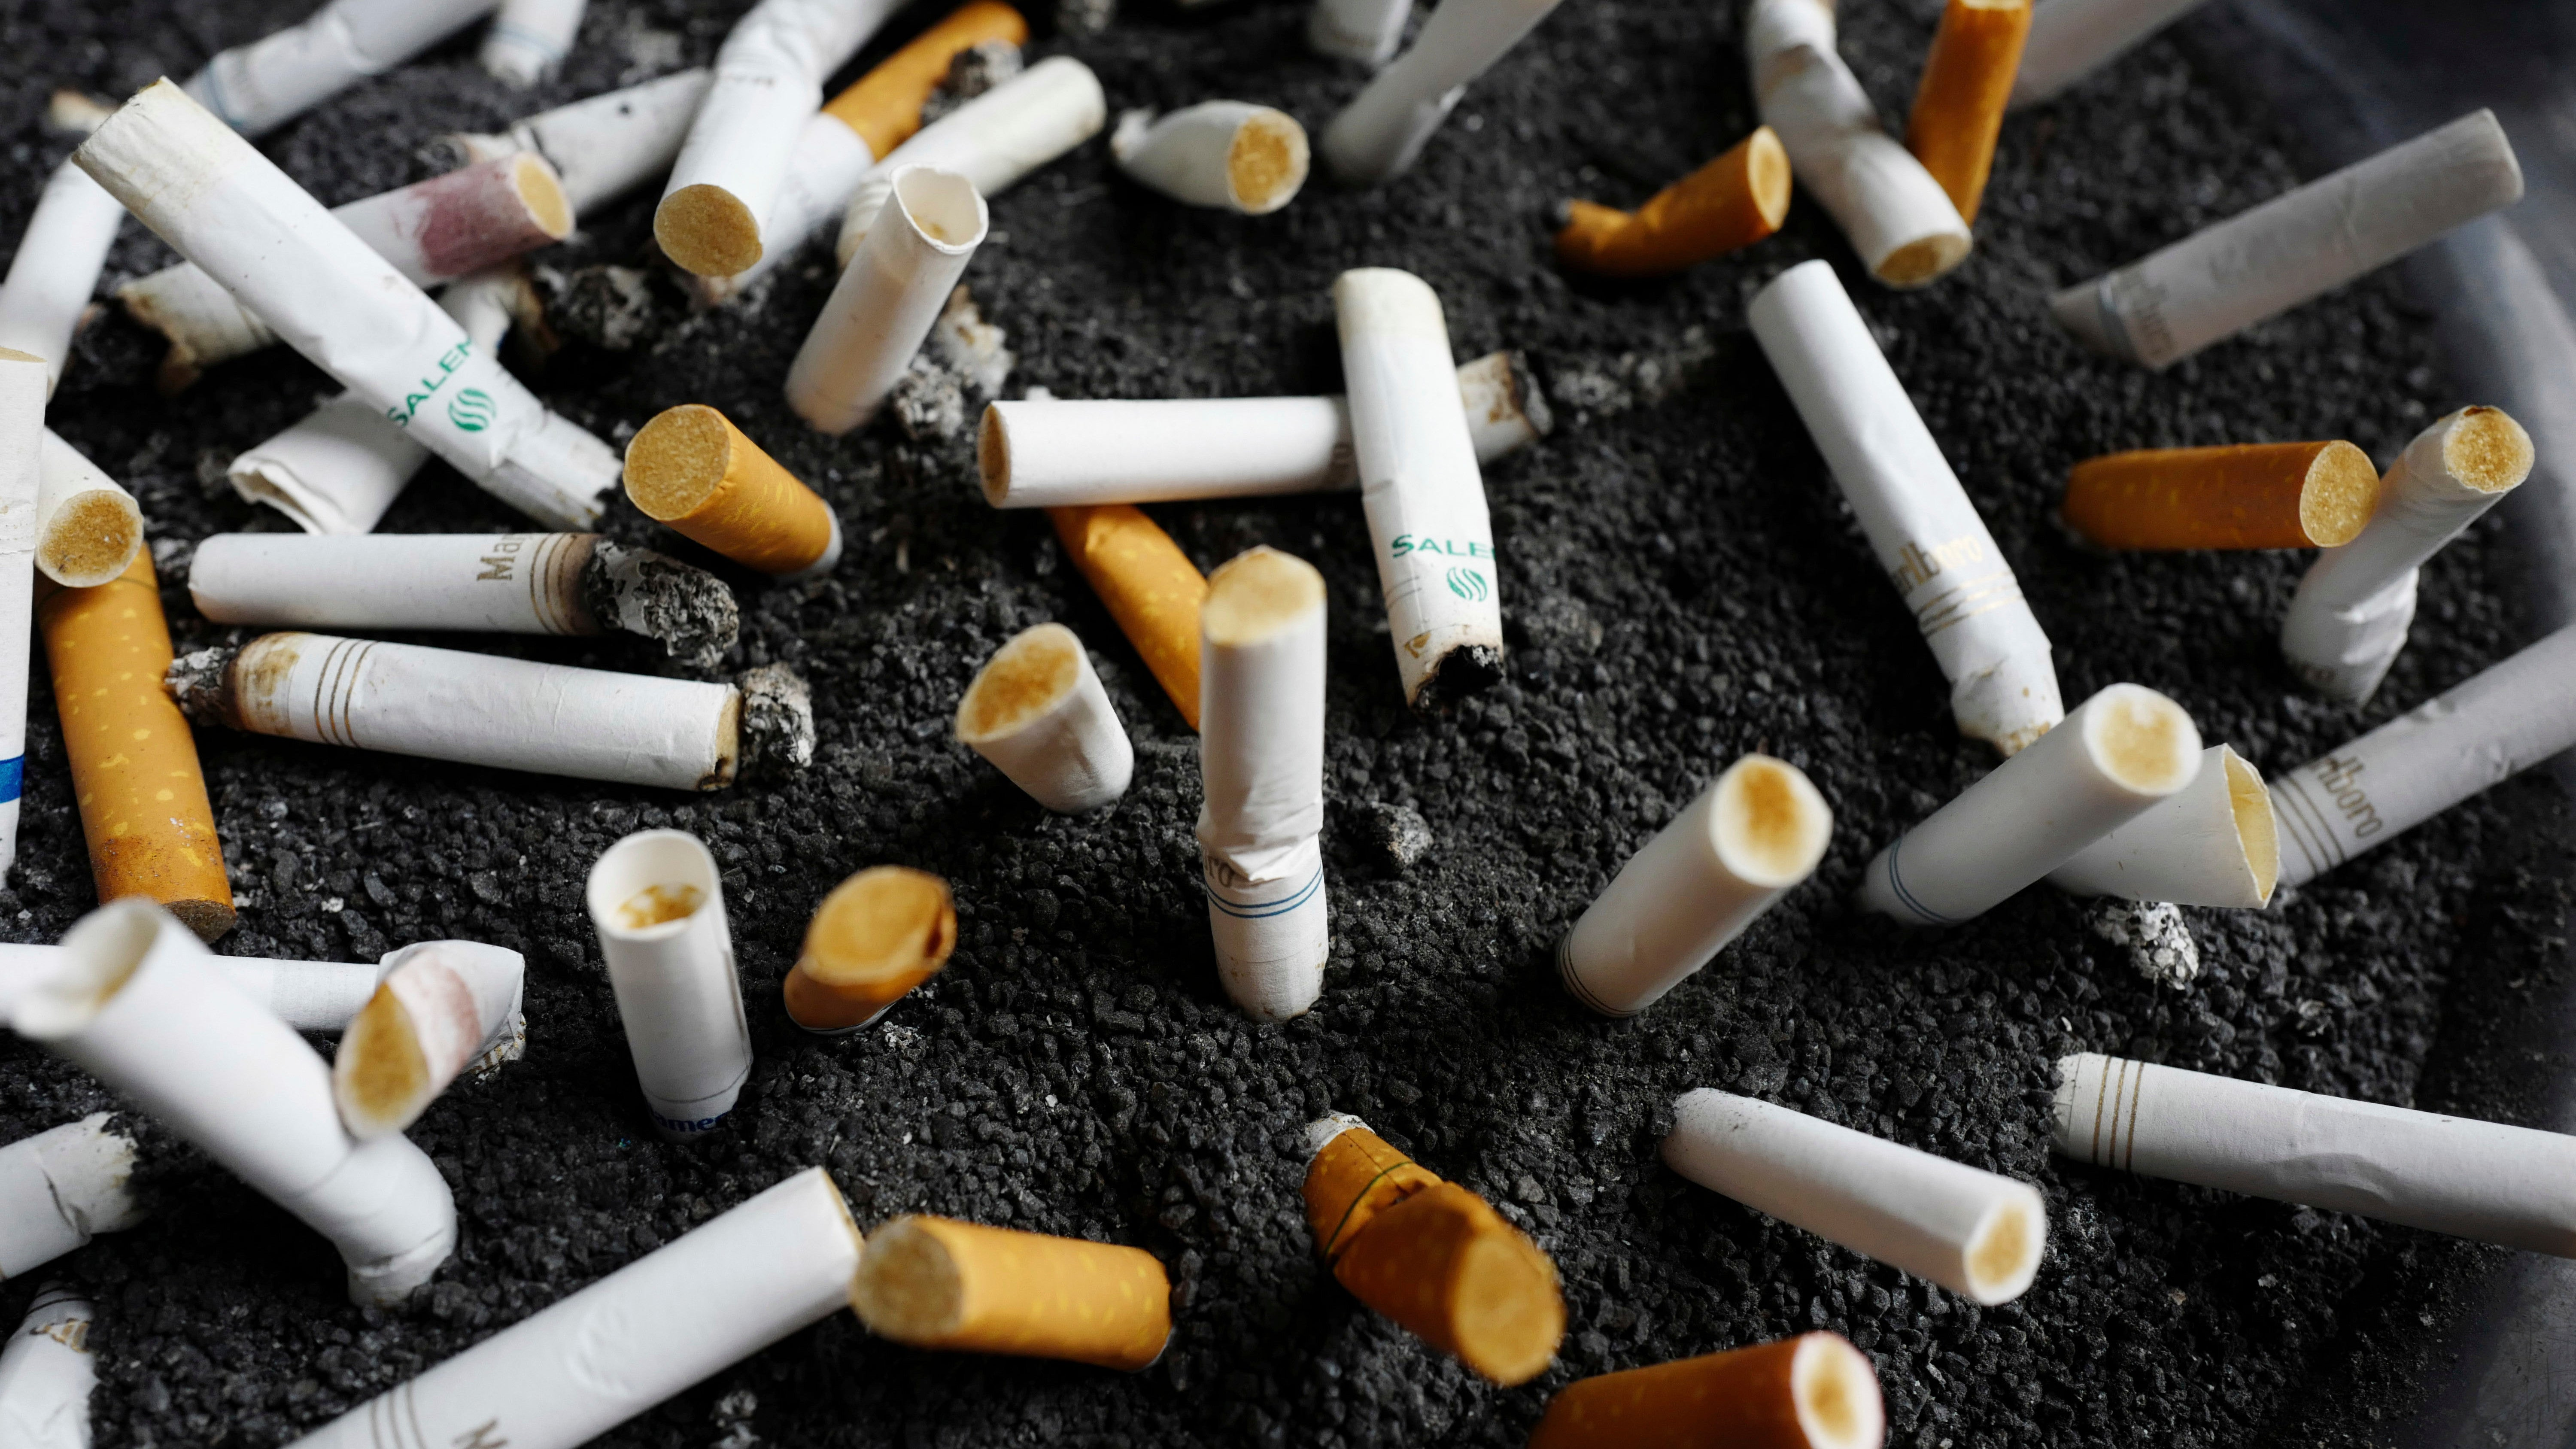 Moviegoers Exposed To Toxic 'Thirdhand Smoke' From Clothing Of Smokers, Study Finds